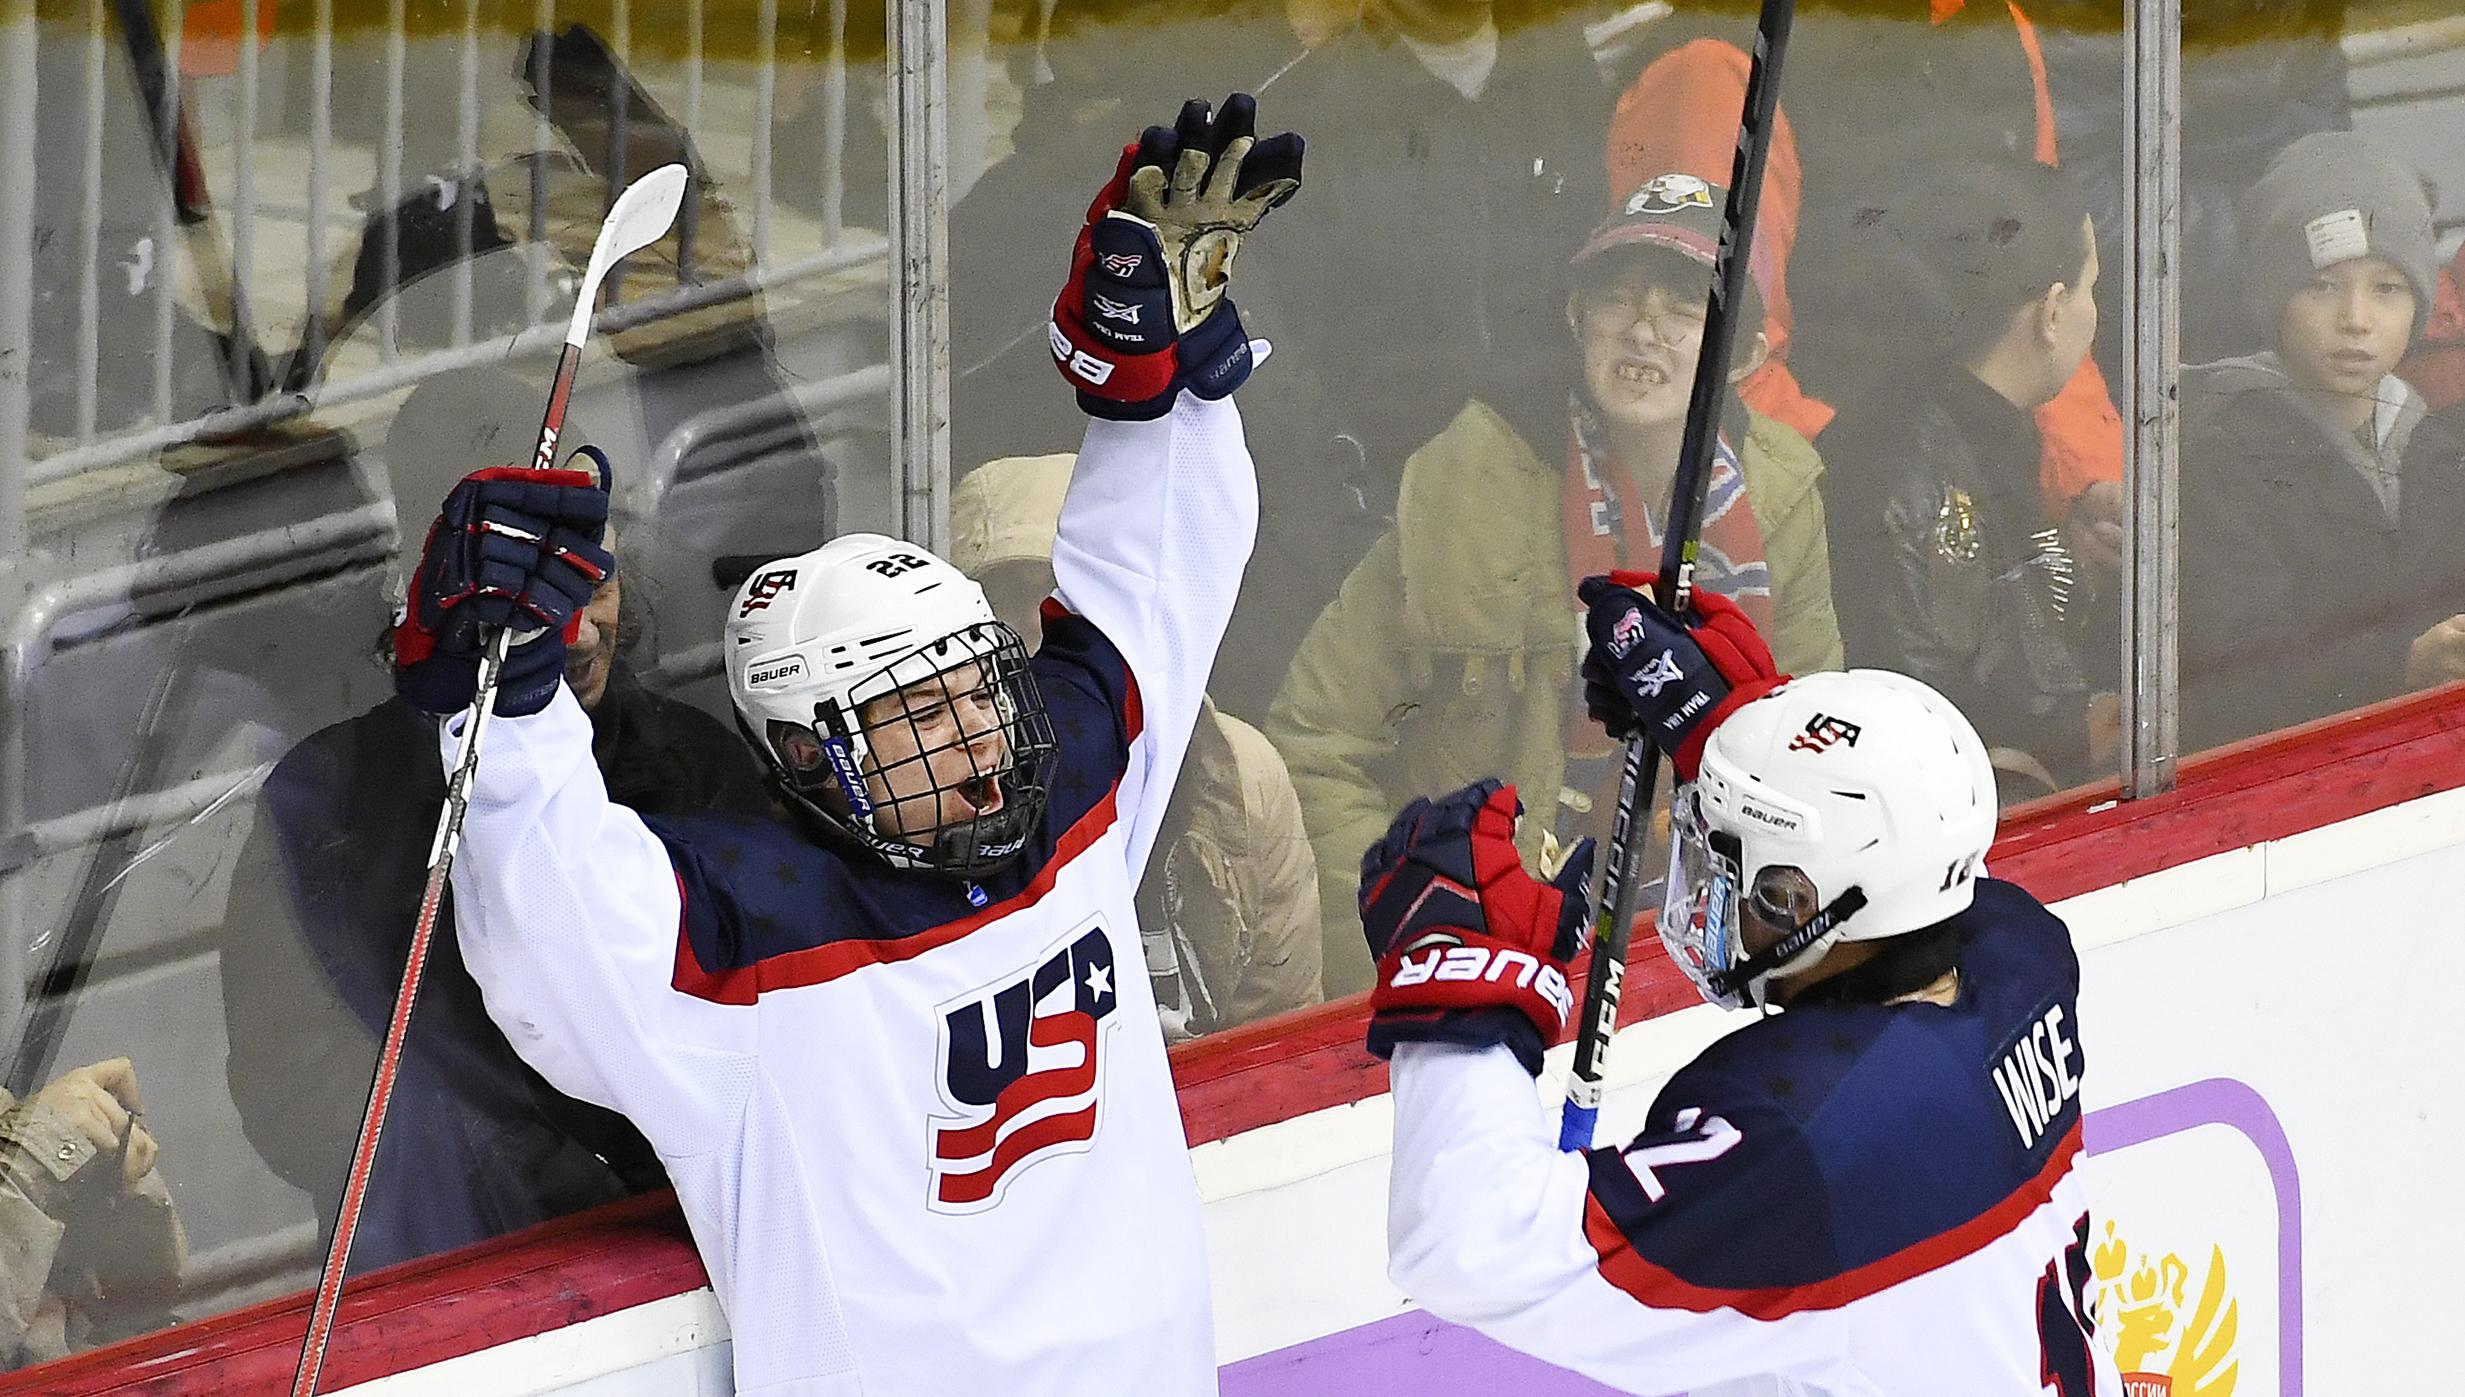 U18 WORLDS: U.S. Skates Past Russia, 5-1, In Quarterfinal